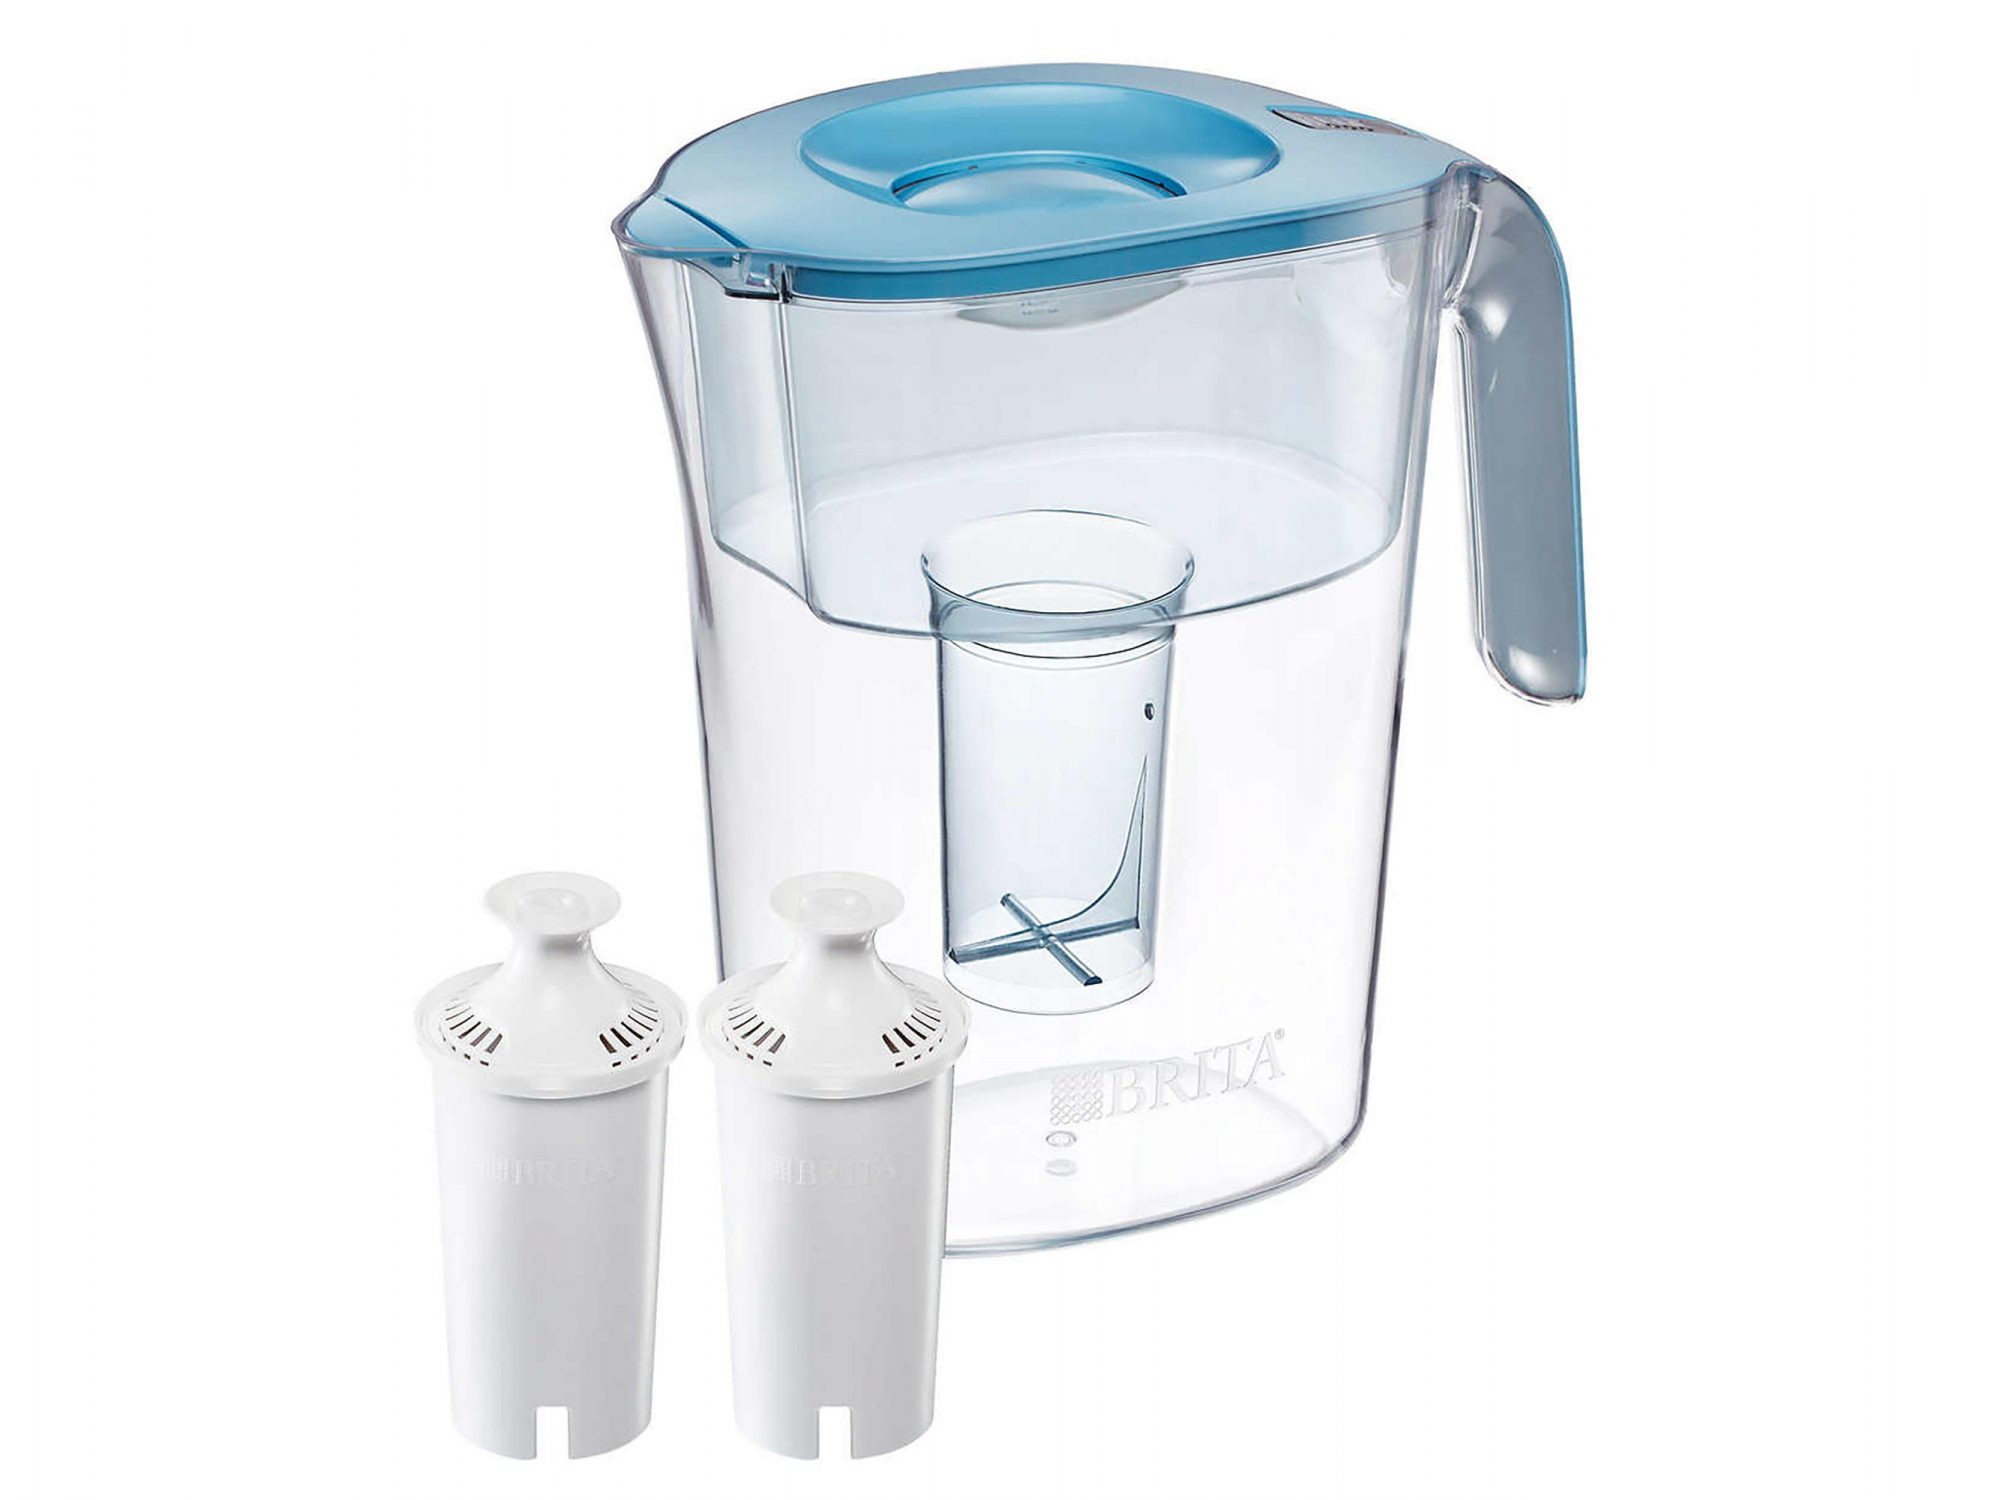 6 November Sale Items Every Costco Shopper Should Know About 1810w-Brita-Pitcher